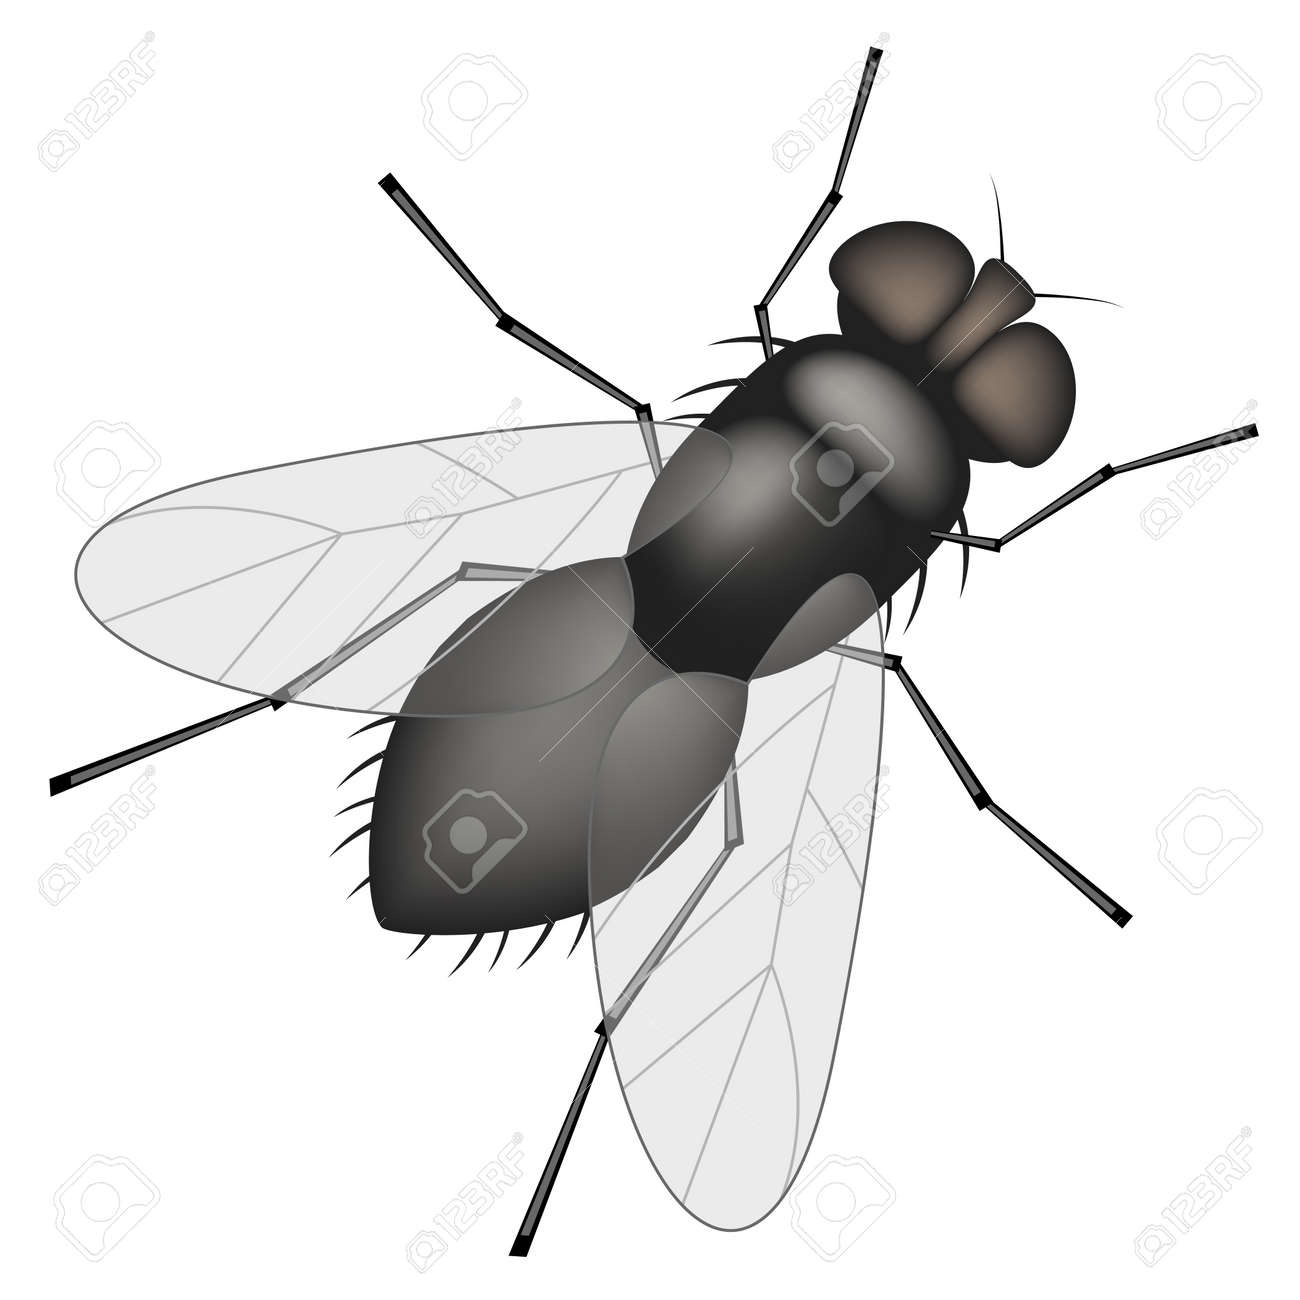 Housefly Stock Photos. Royalty Free Housefly Images